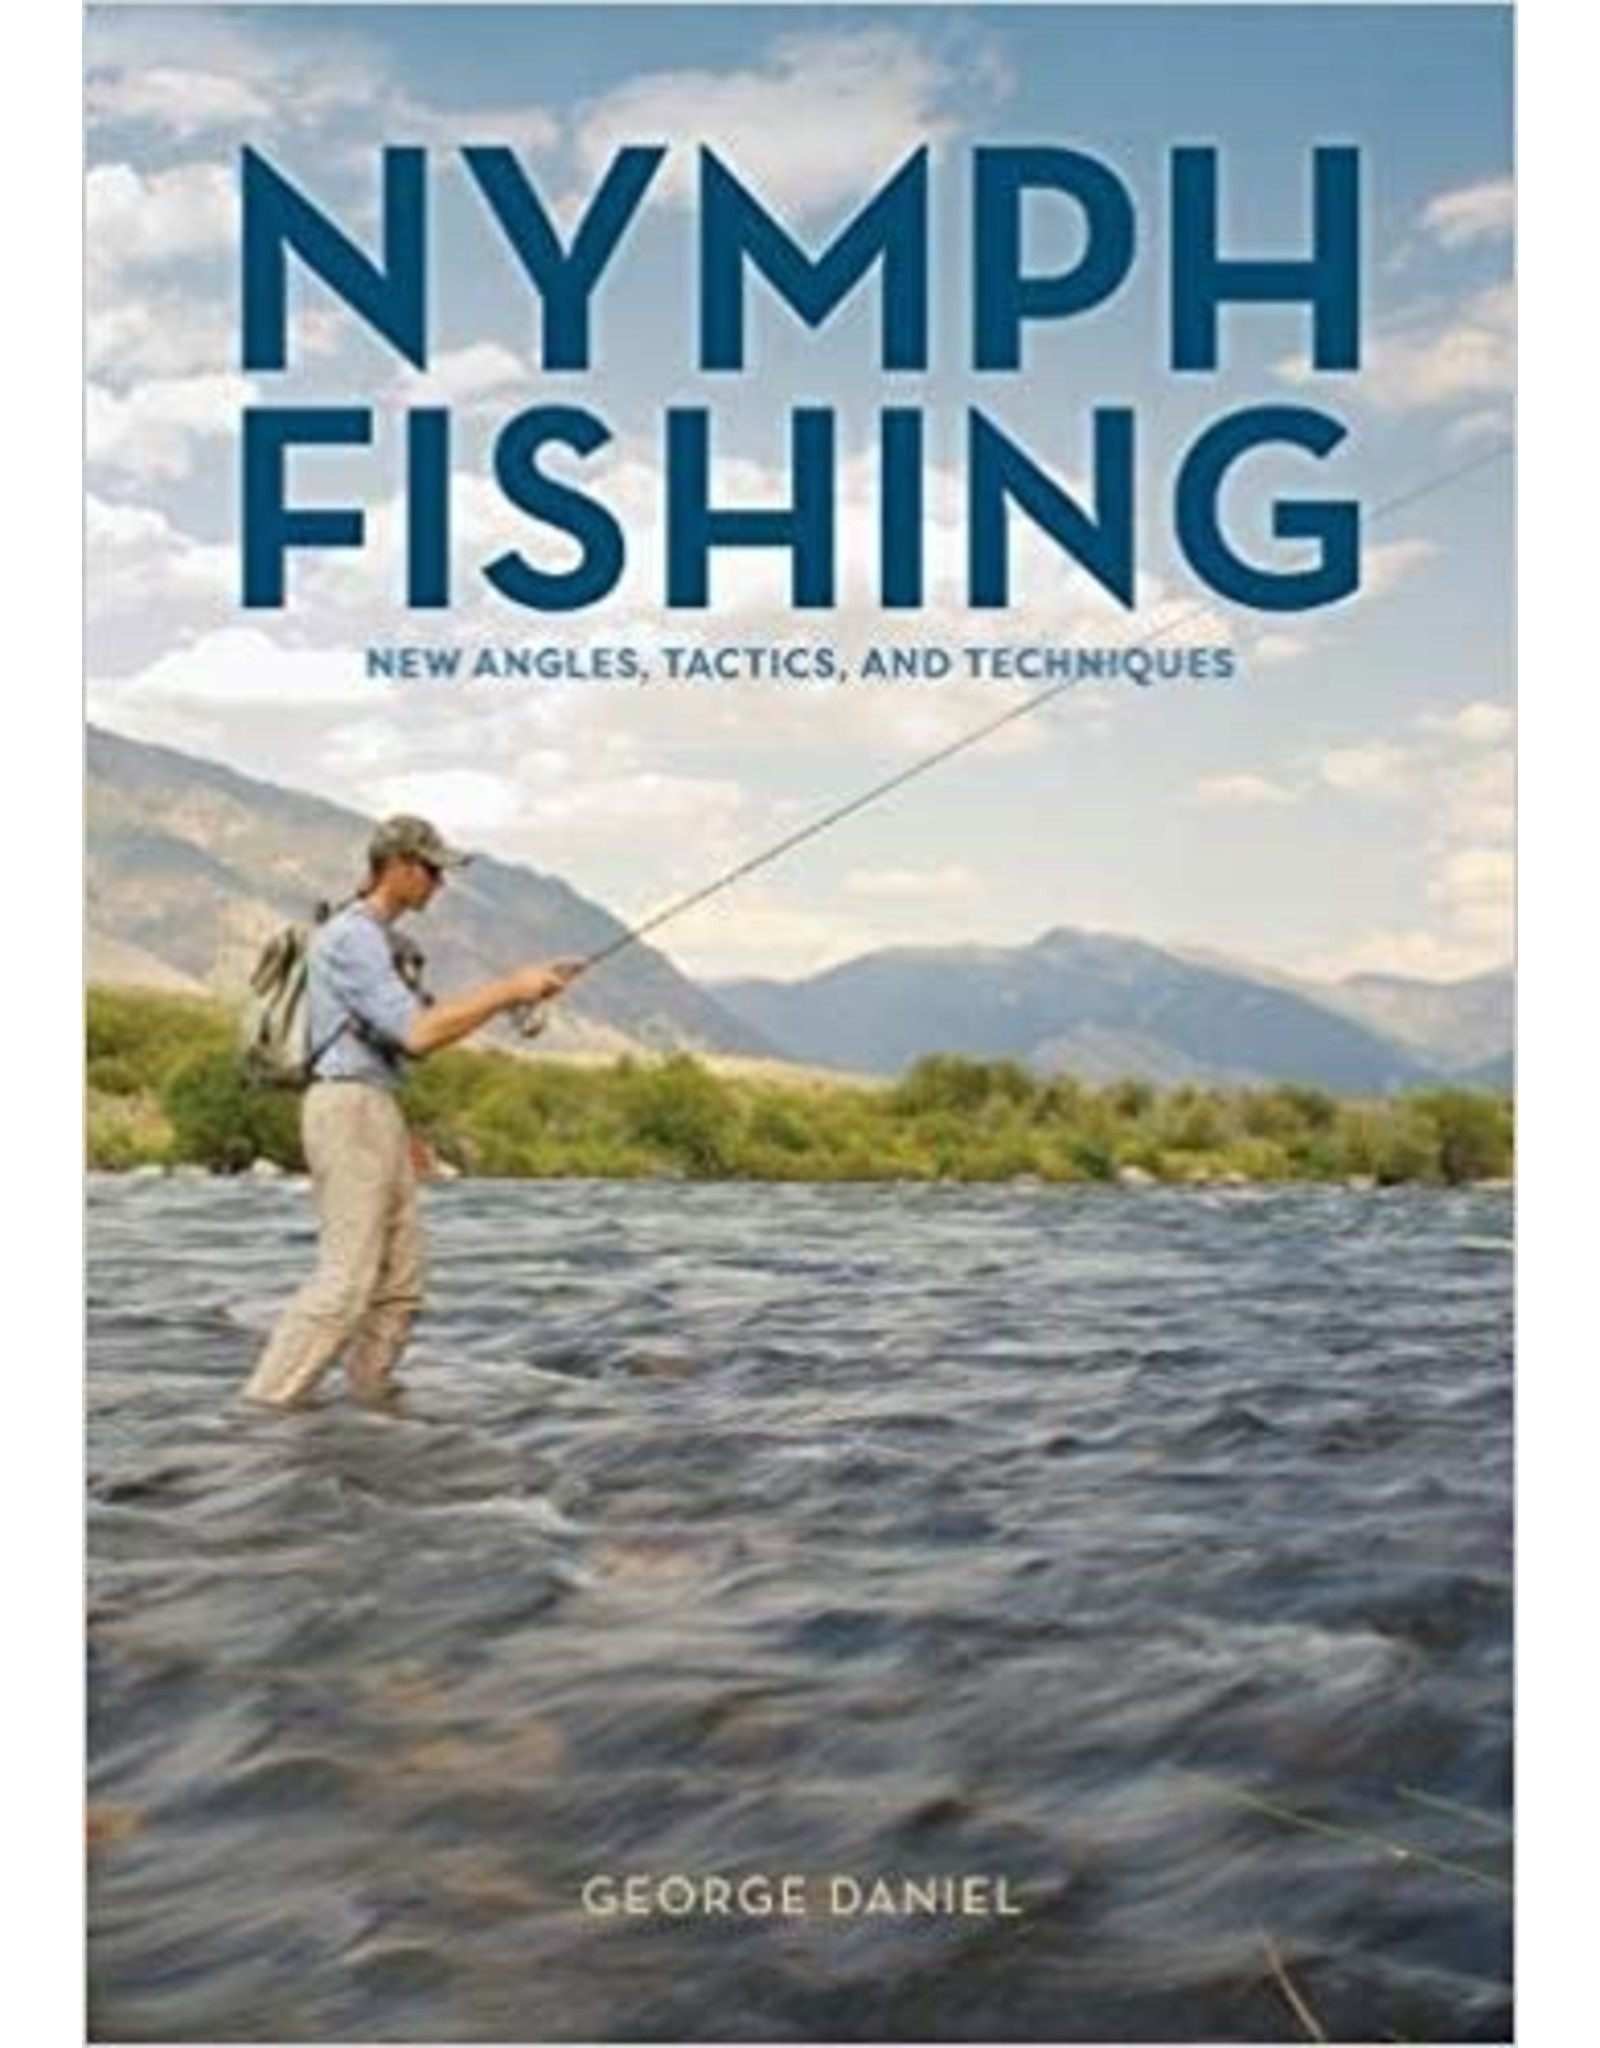 Nymph Fishing, New Angles, Tactics and Techniques by George Daniels